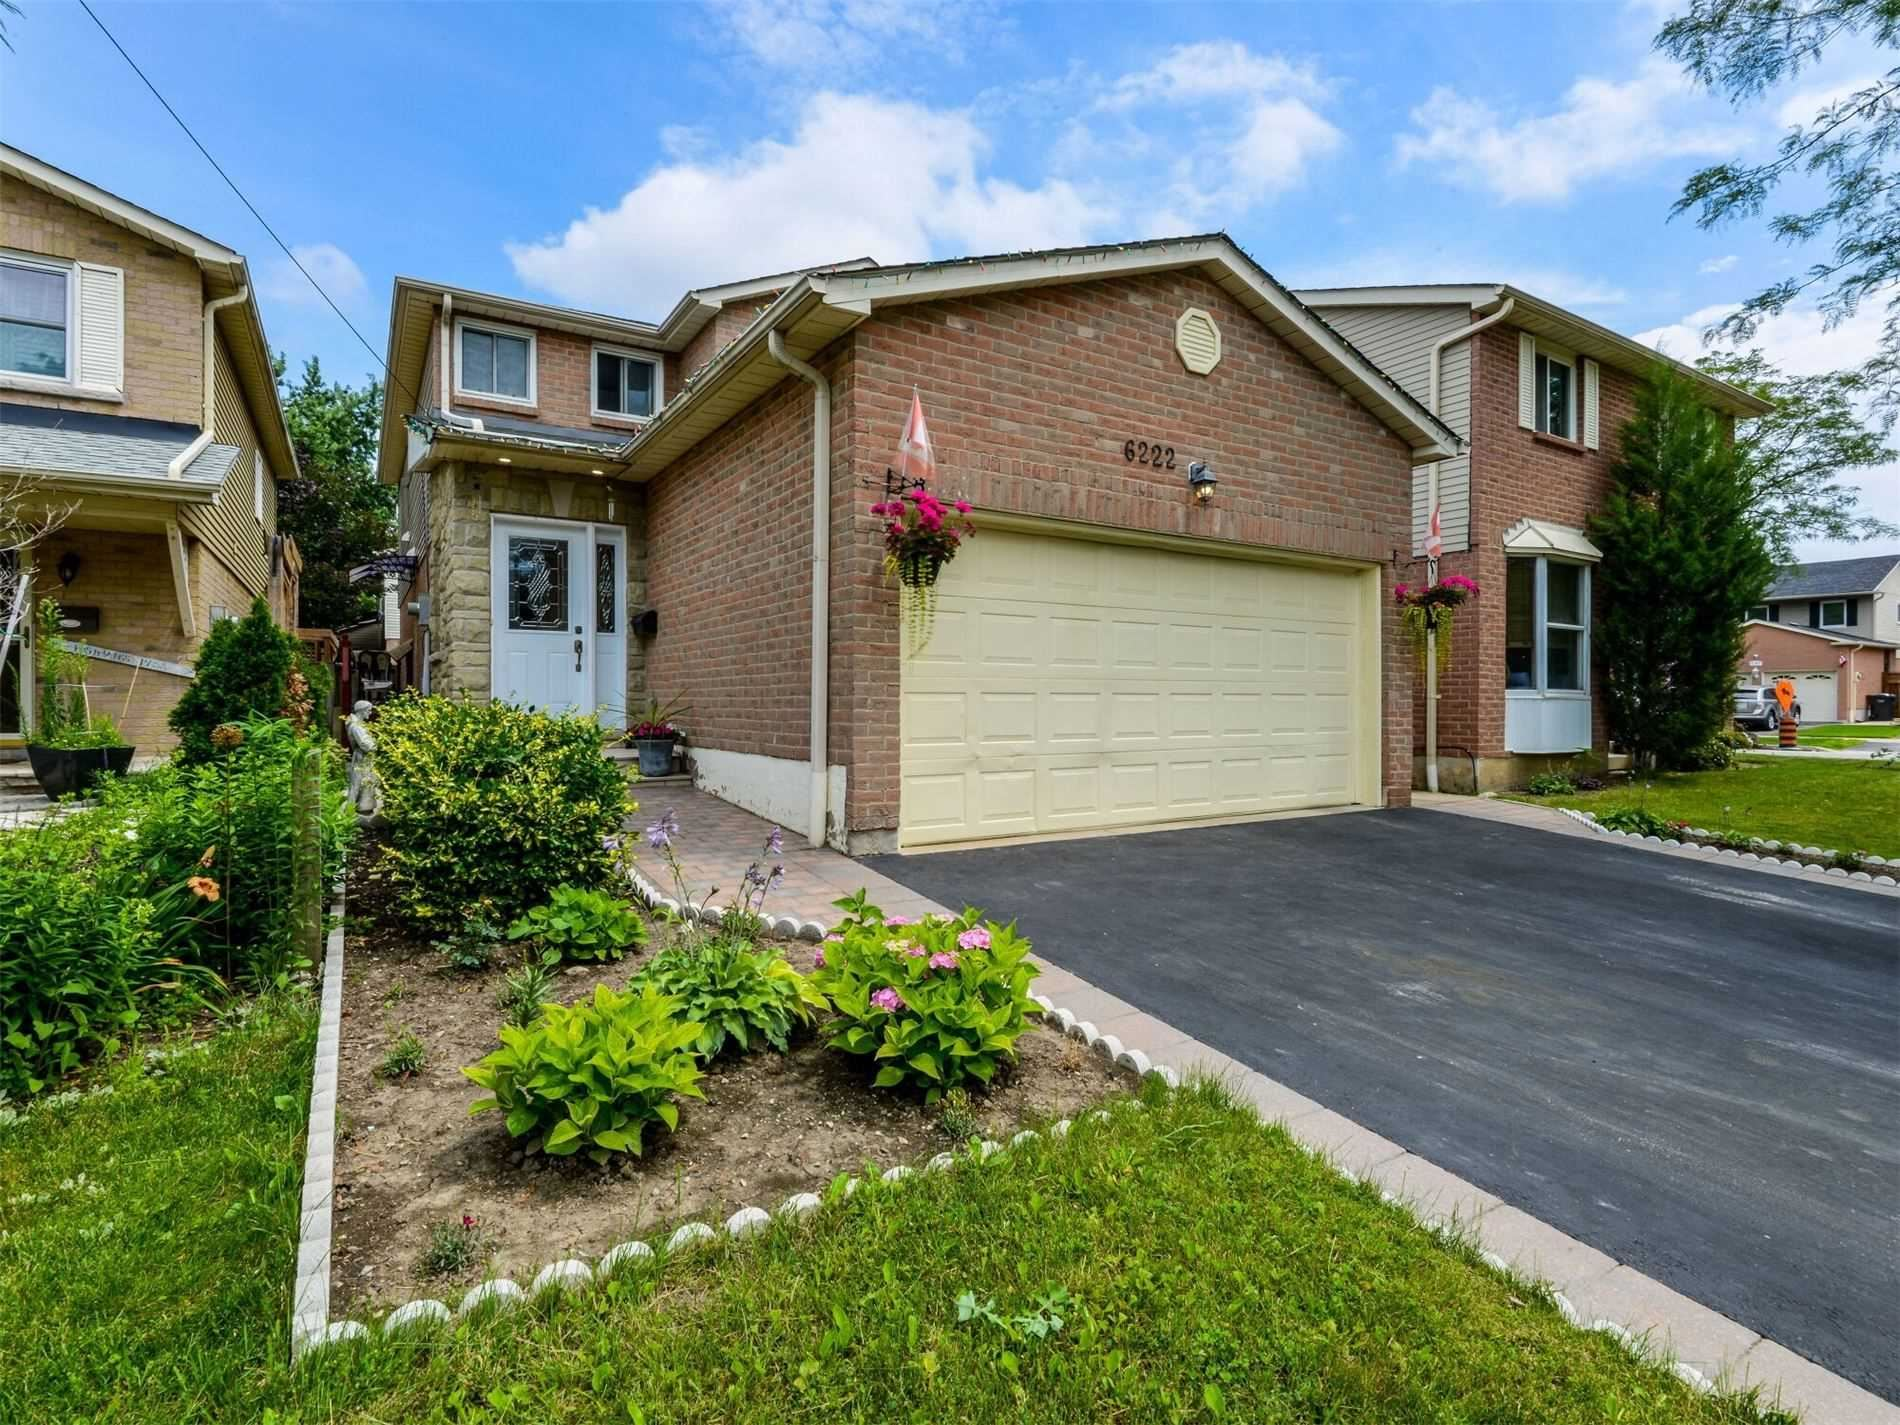 Photo of 6222 Fullerton Cres, Mississauga, ON L5N3A4 (MLS # W5284842)